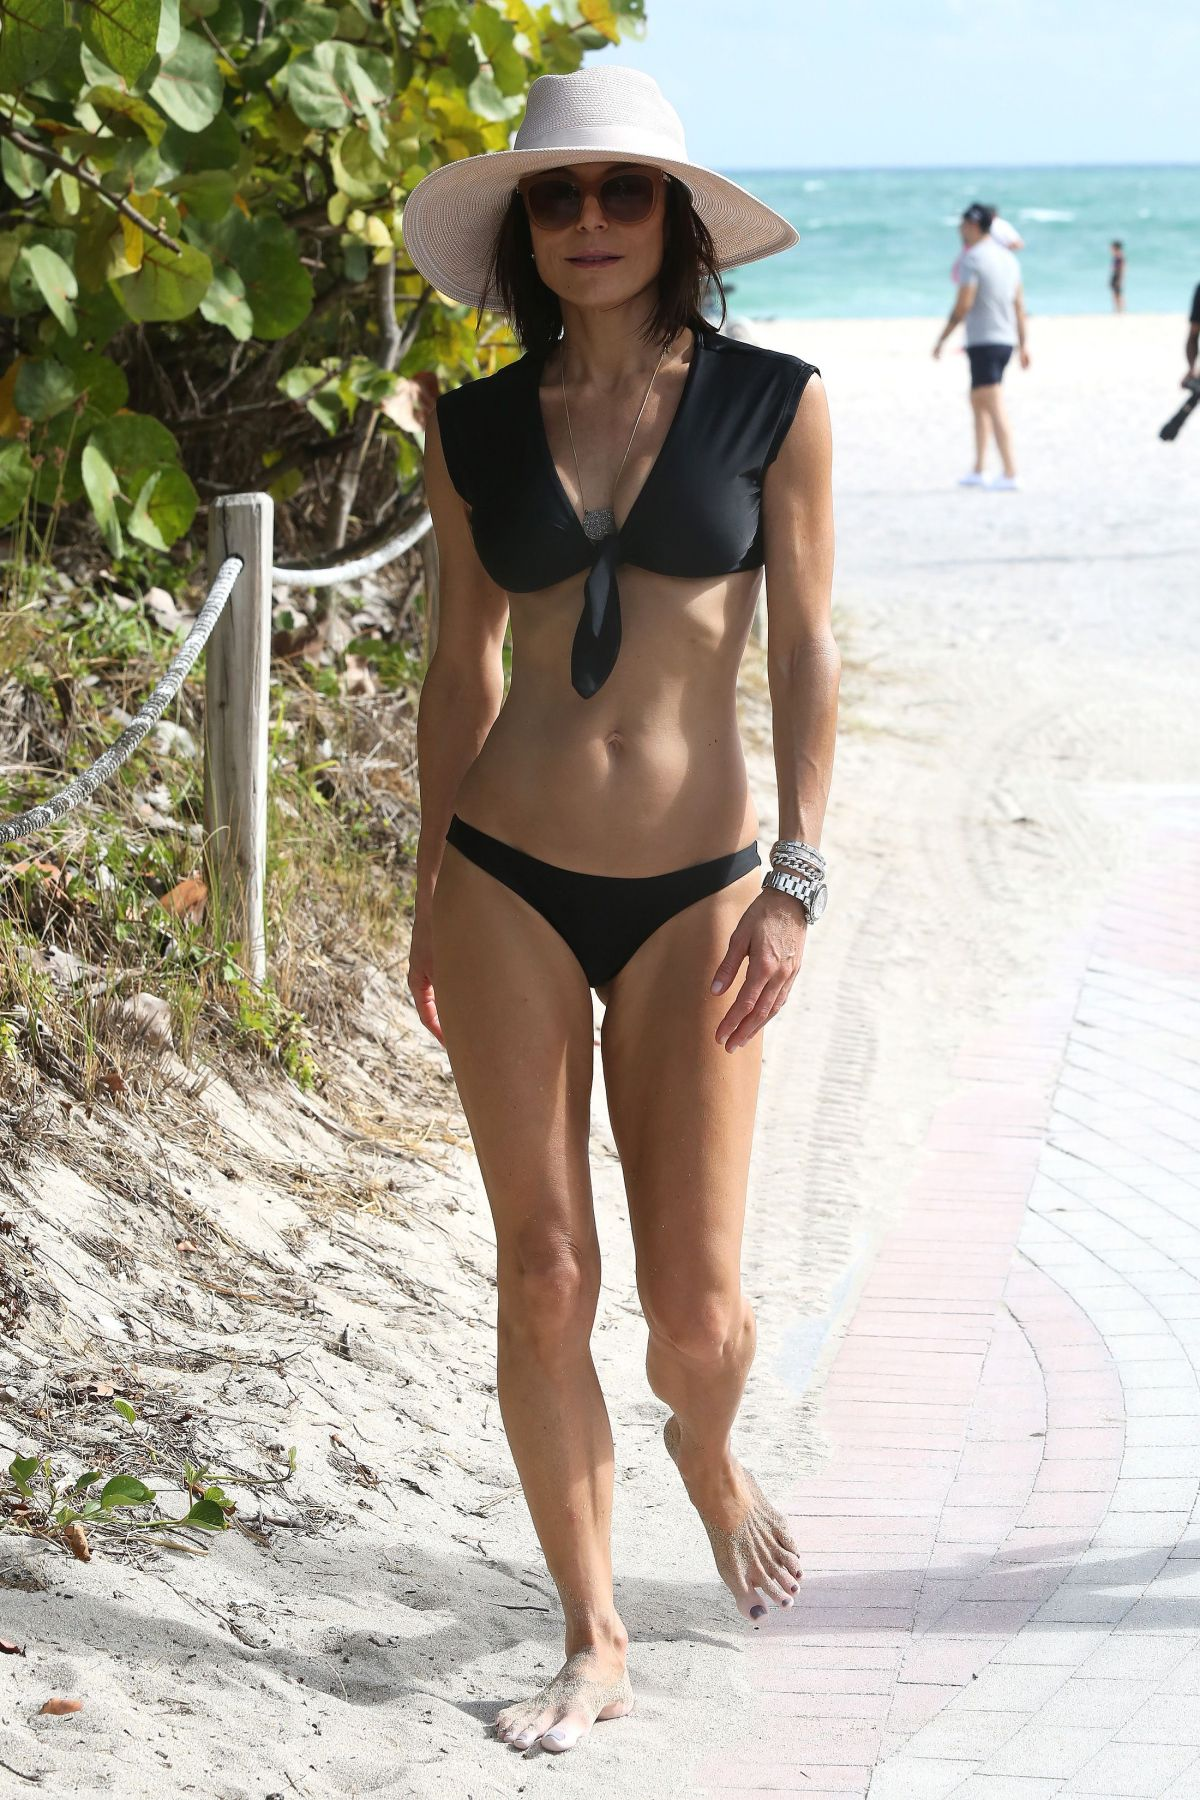 BETHENNY FRANKEL in Bikini on the Beach in Miami 12/05/2016   bethenny-frankel-in-bikini-on-the-beach-in-miami-12-05-2016_14